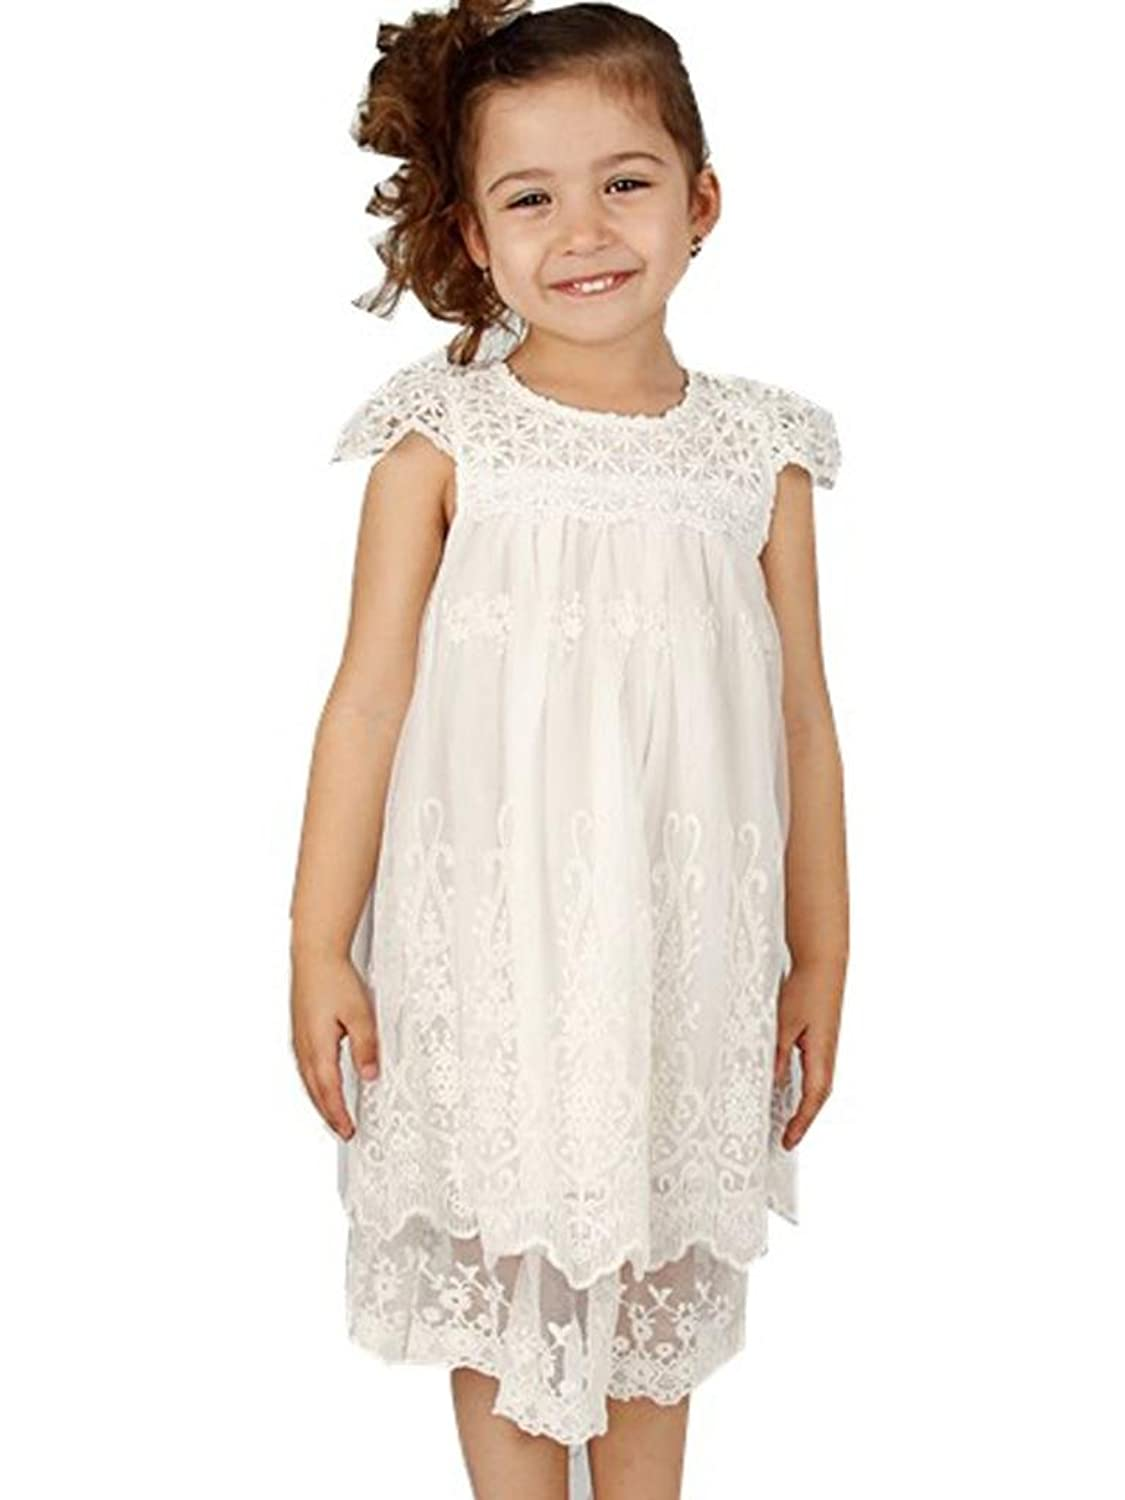 Victorian Kids Costumes & Shoes- Girls, Boys, Baby, Toddler Bow Dream Off White Ivory White Vintage Rustic Baptism Lace Flower Girls Dress $25.99 AT vintagedancer.com